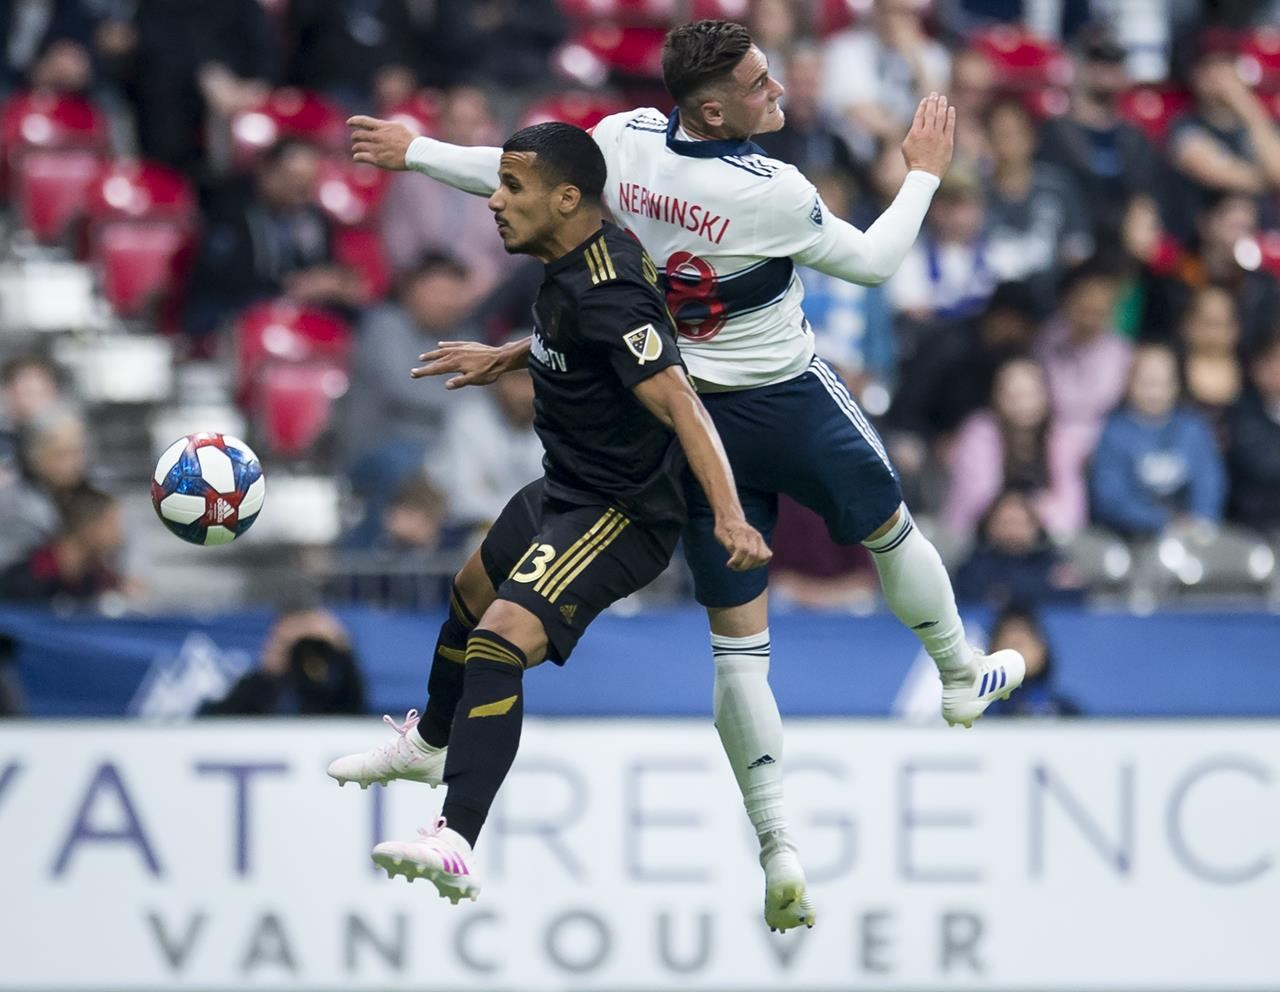 767bdbdb7a8 Hwang's first MLS goal lifts Vancouver Whitecaps to 1-0 victory over LAFC